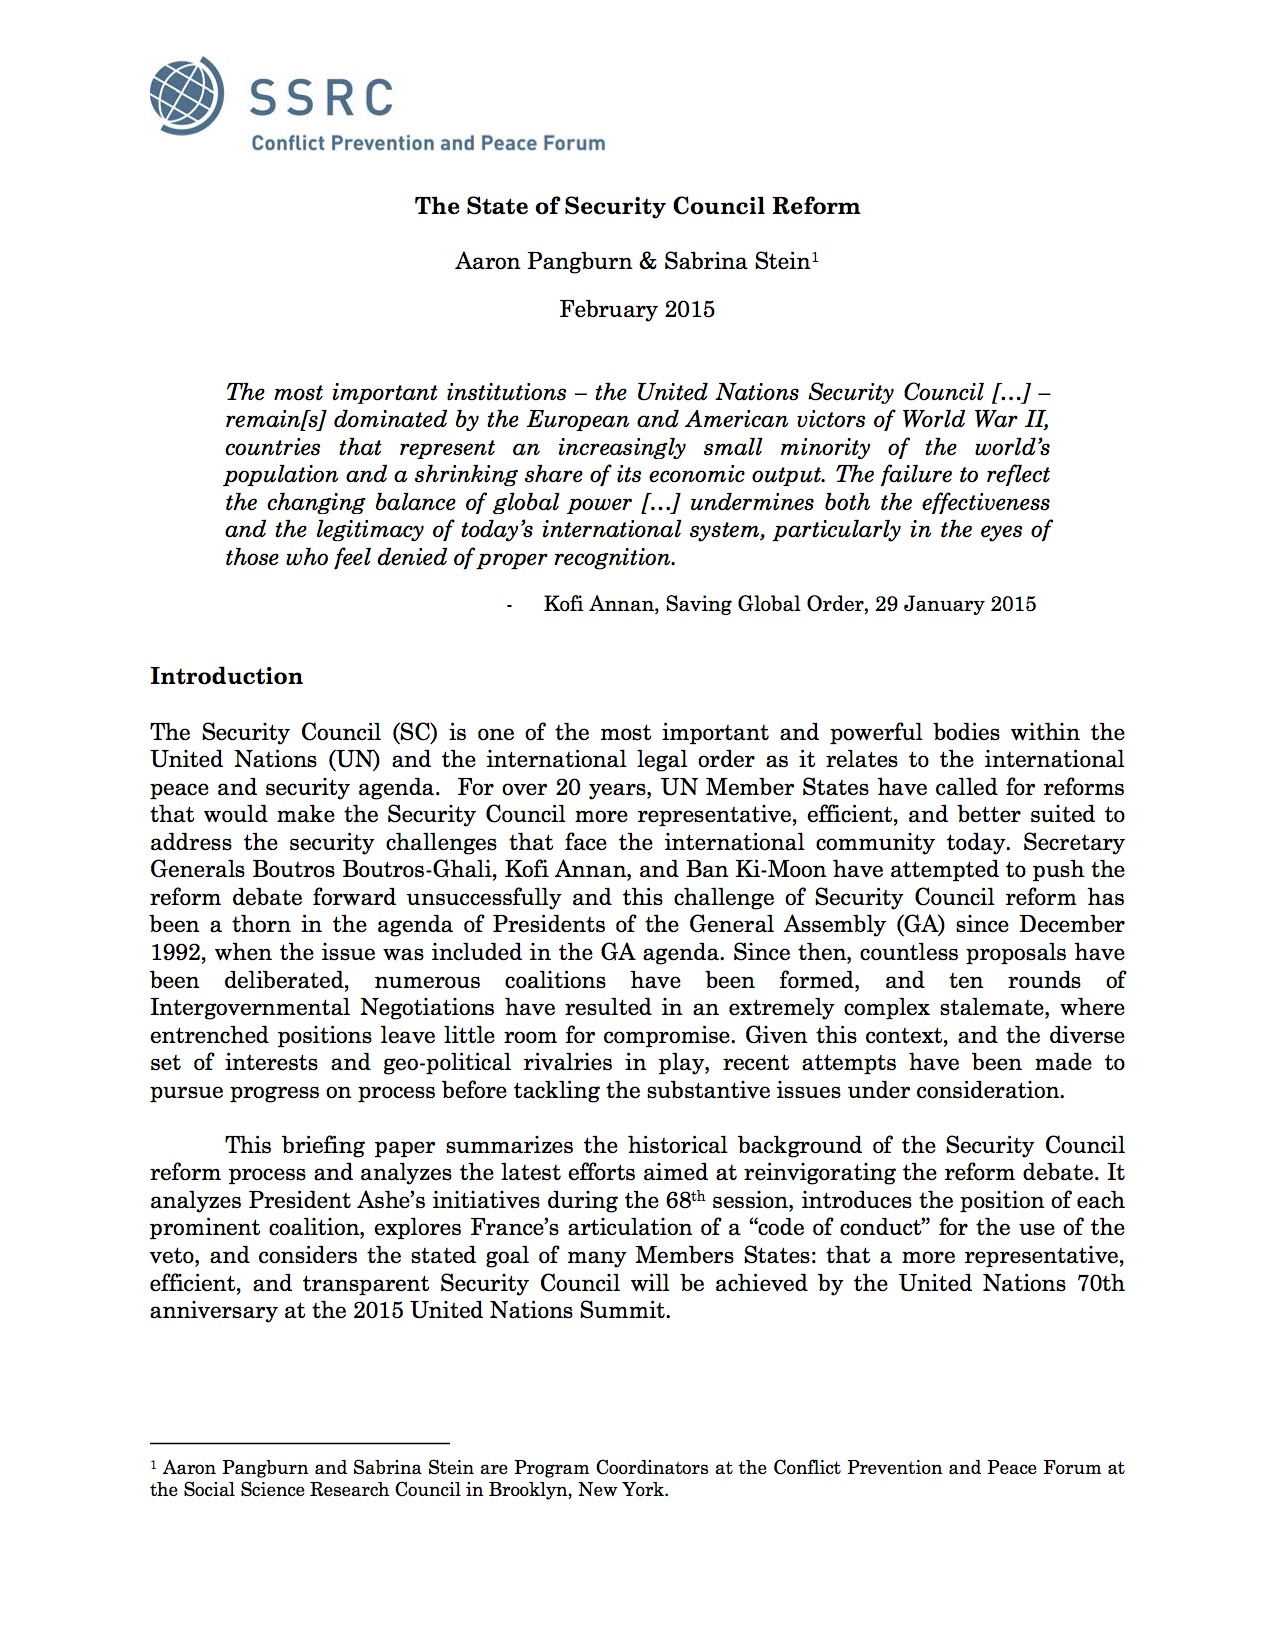 The State Of Security Council Reform Social Science Research